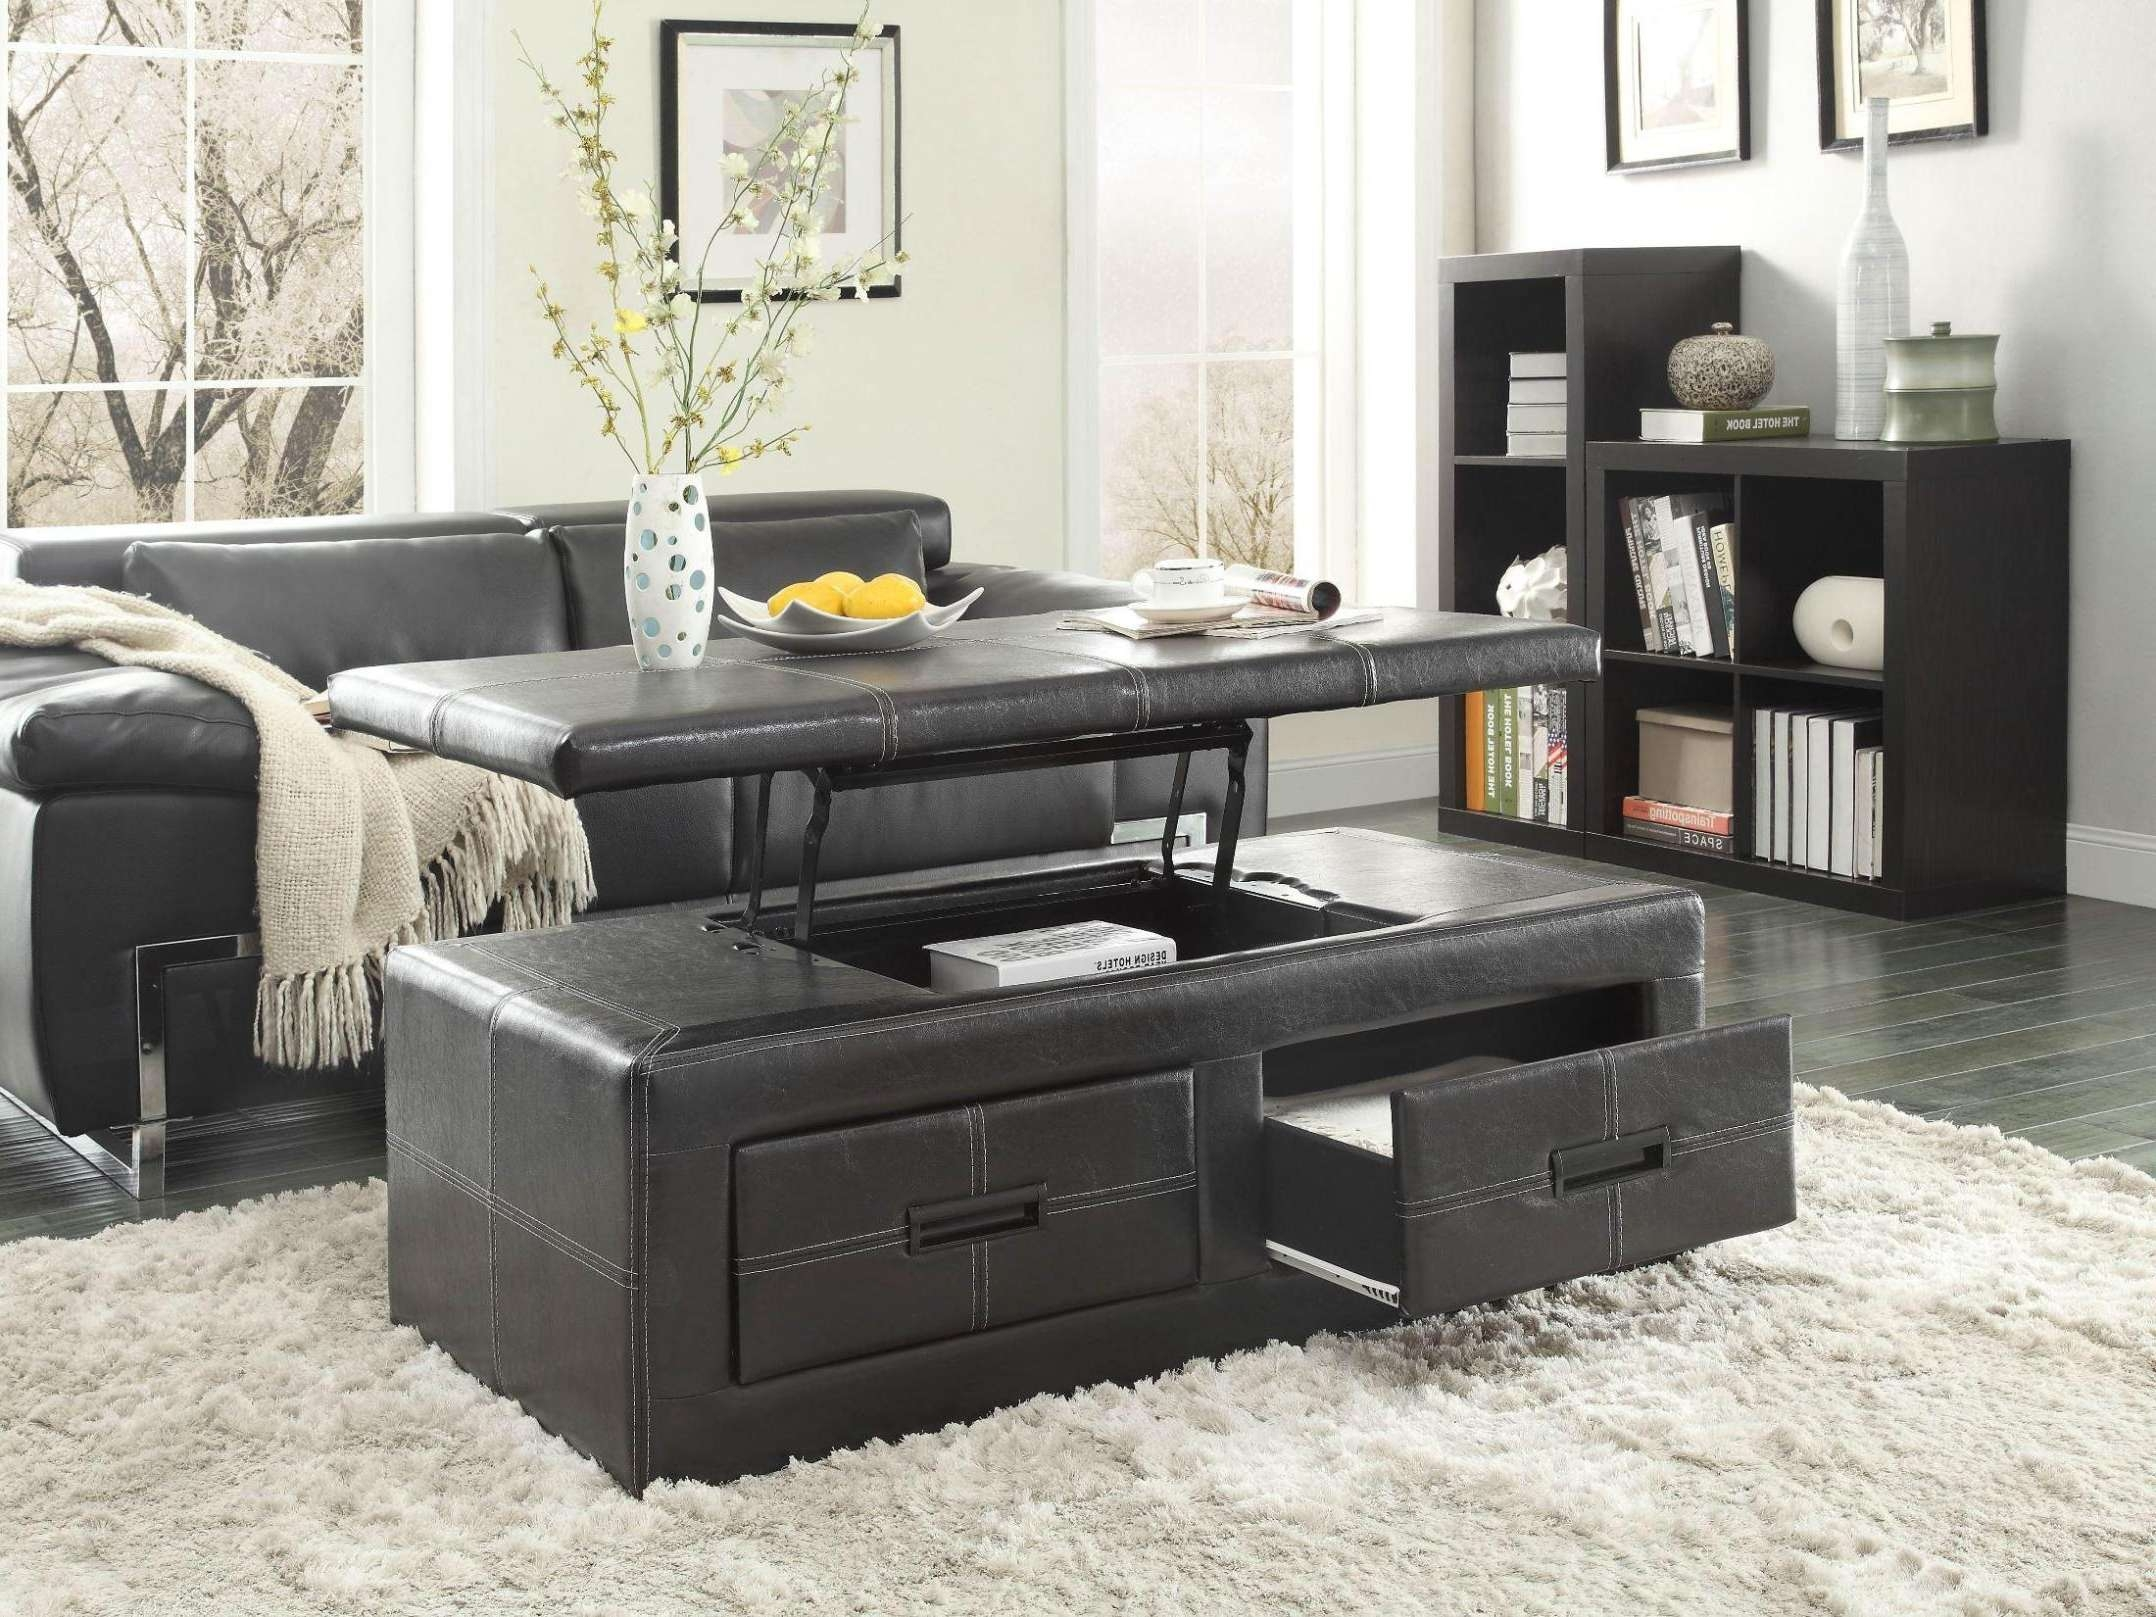 2017 Glass Lift Top Coffee Tables Pertaining To Coffee Tables : Parsons Lift Top Coffee Table In Black That Lifts (View 6 of 20)